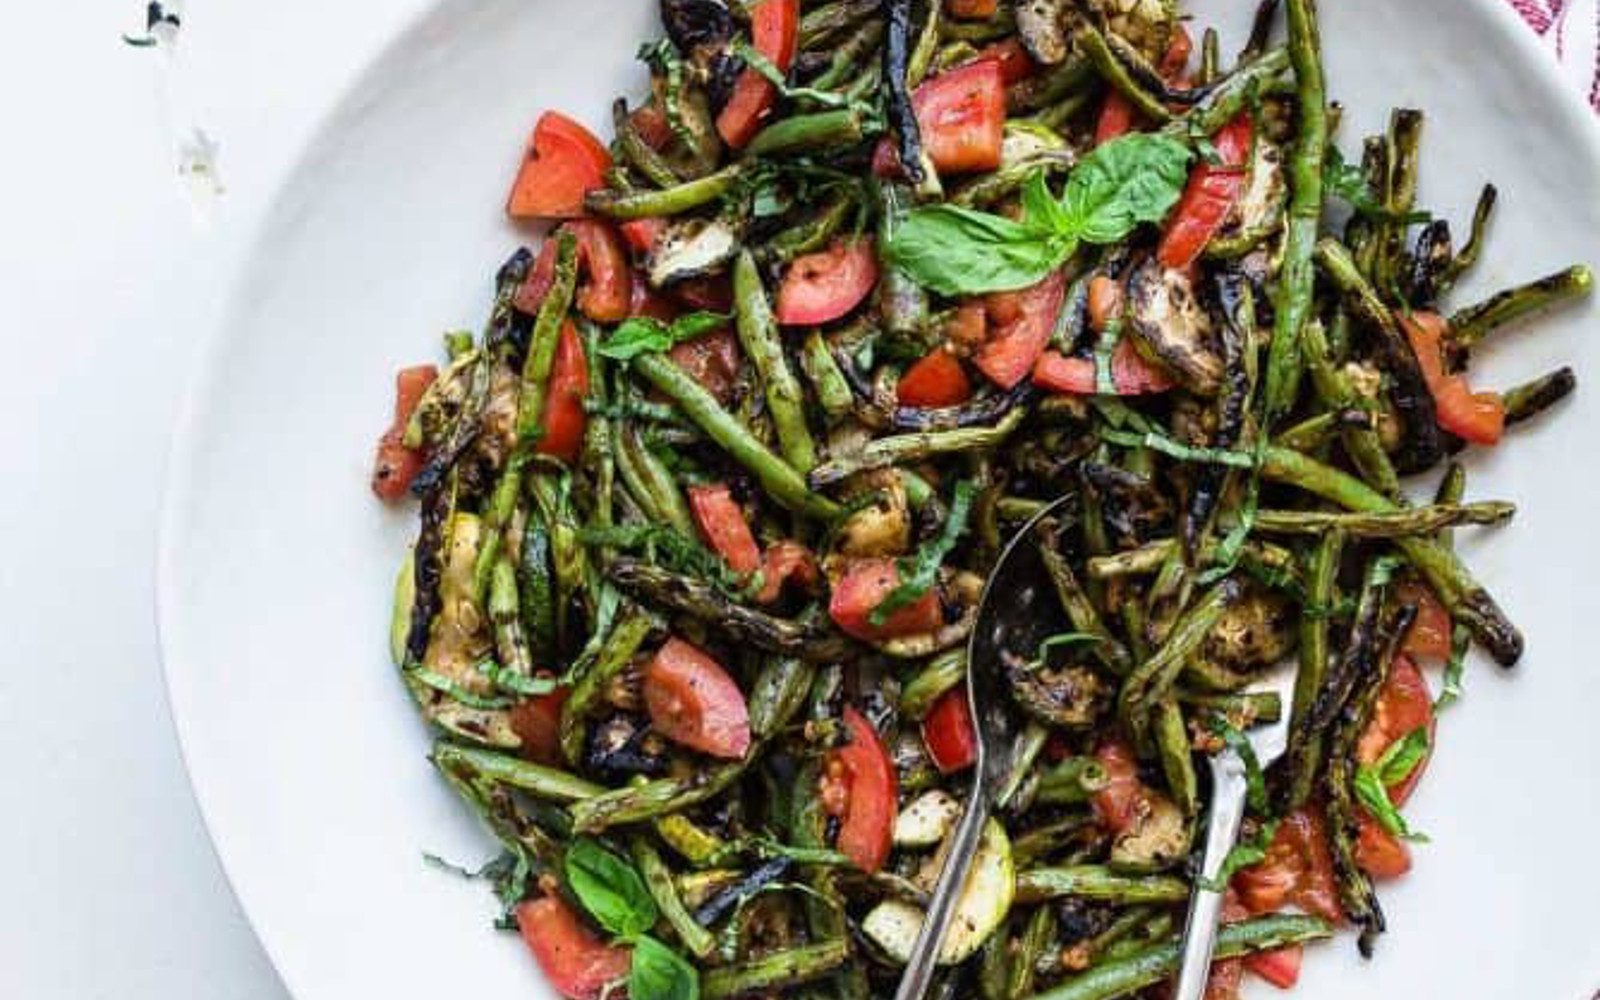 Vegan Grilled Zucchini and Green Bean Salad